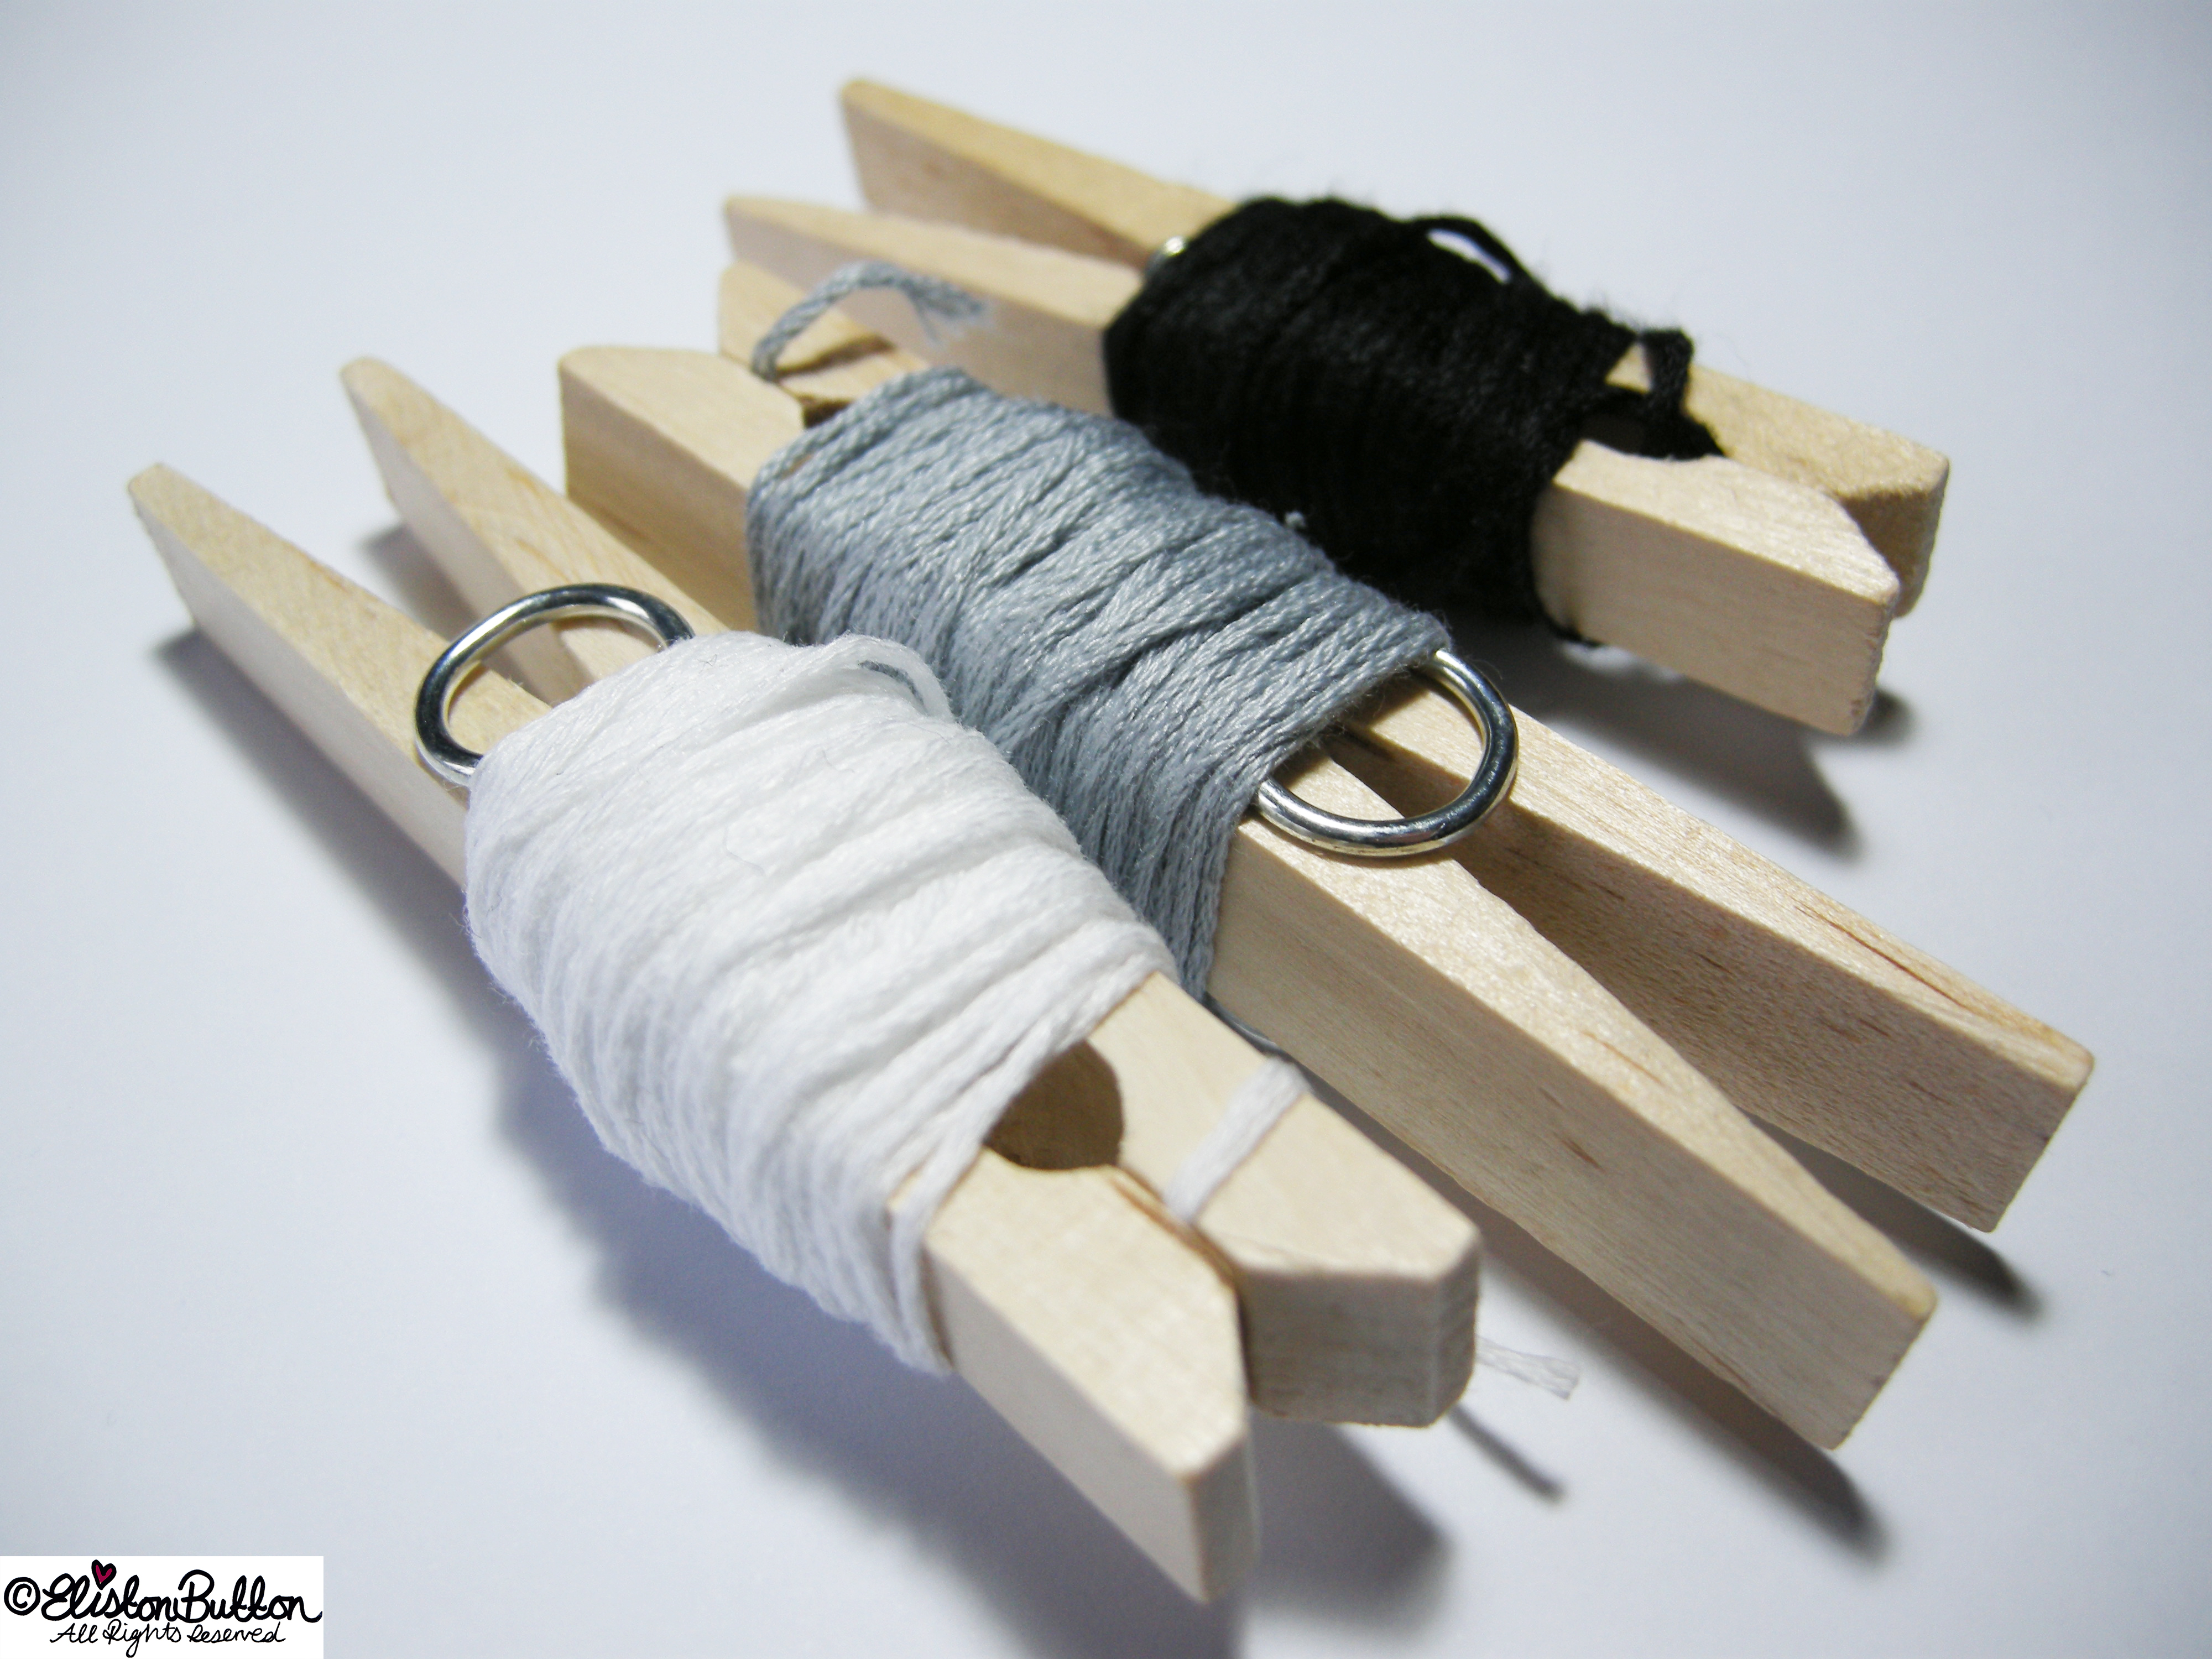 White, Grey and Black Embroidery Threads - 27 Before 27 – Monochrome at www.elistonbutton.com - Eliston Button - That Crafty Kid – Art, Design, Craft & Adventure.